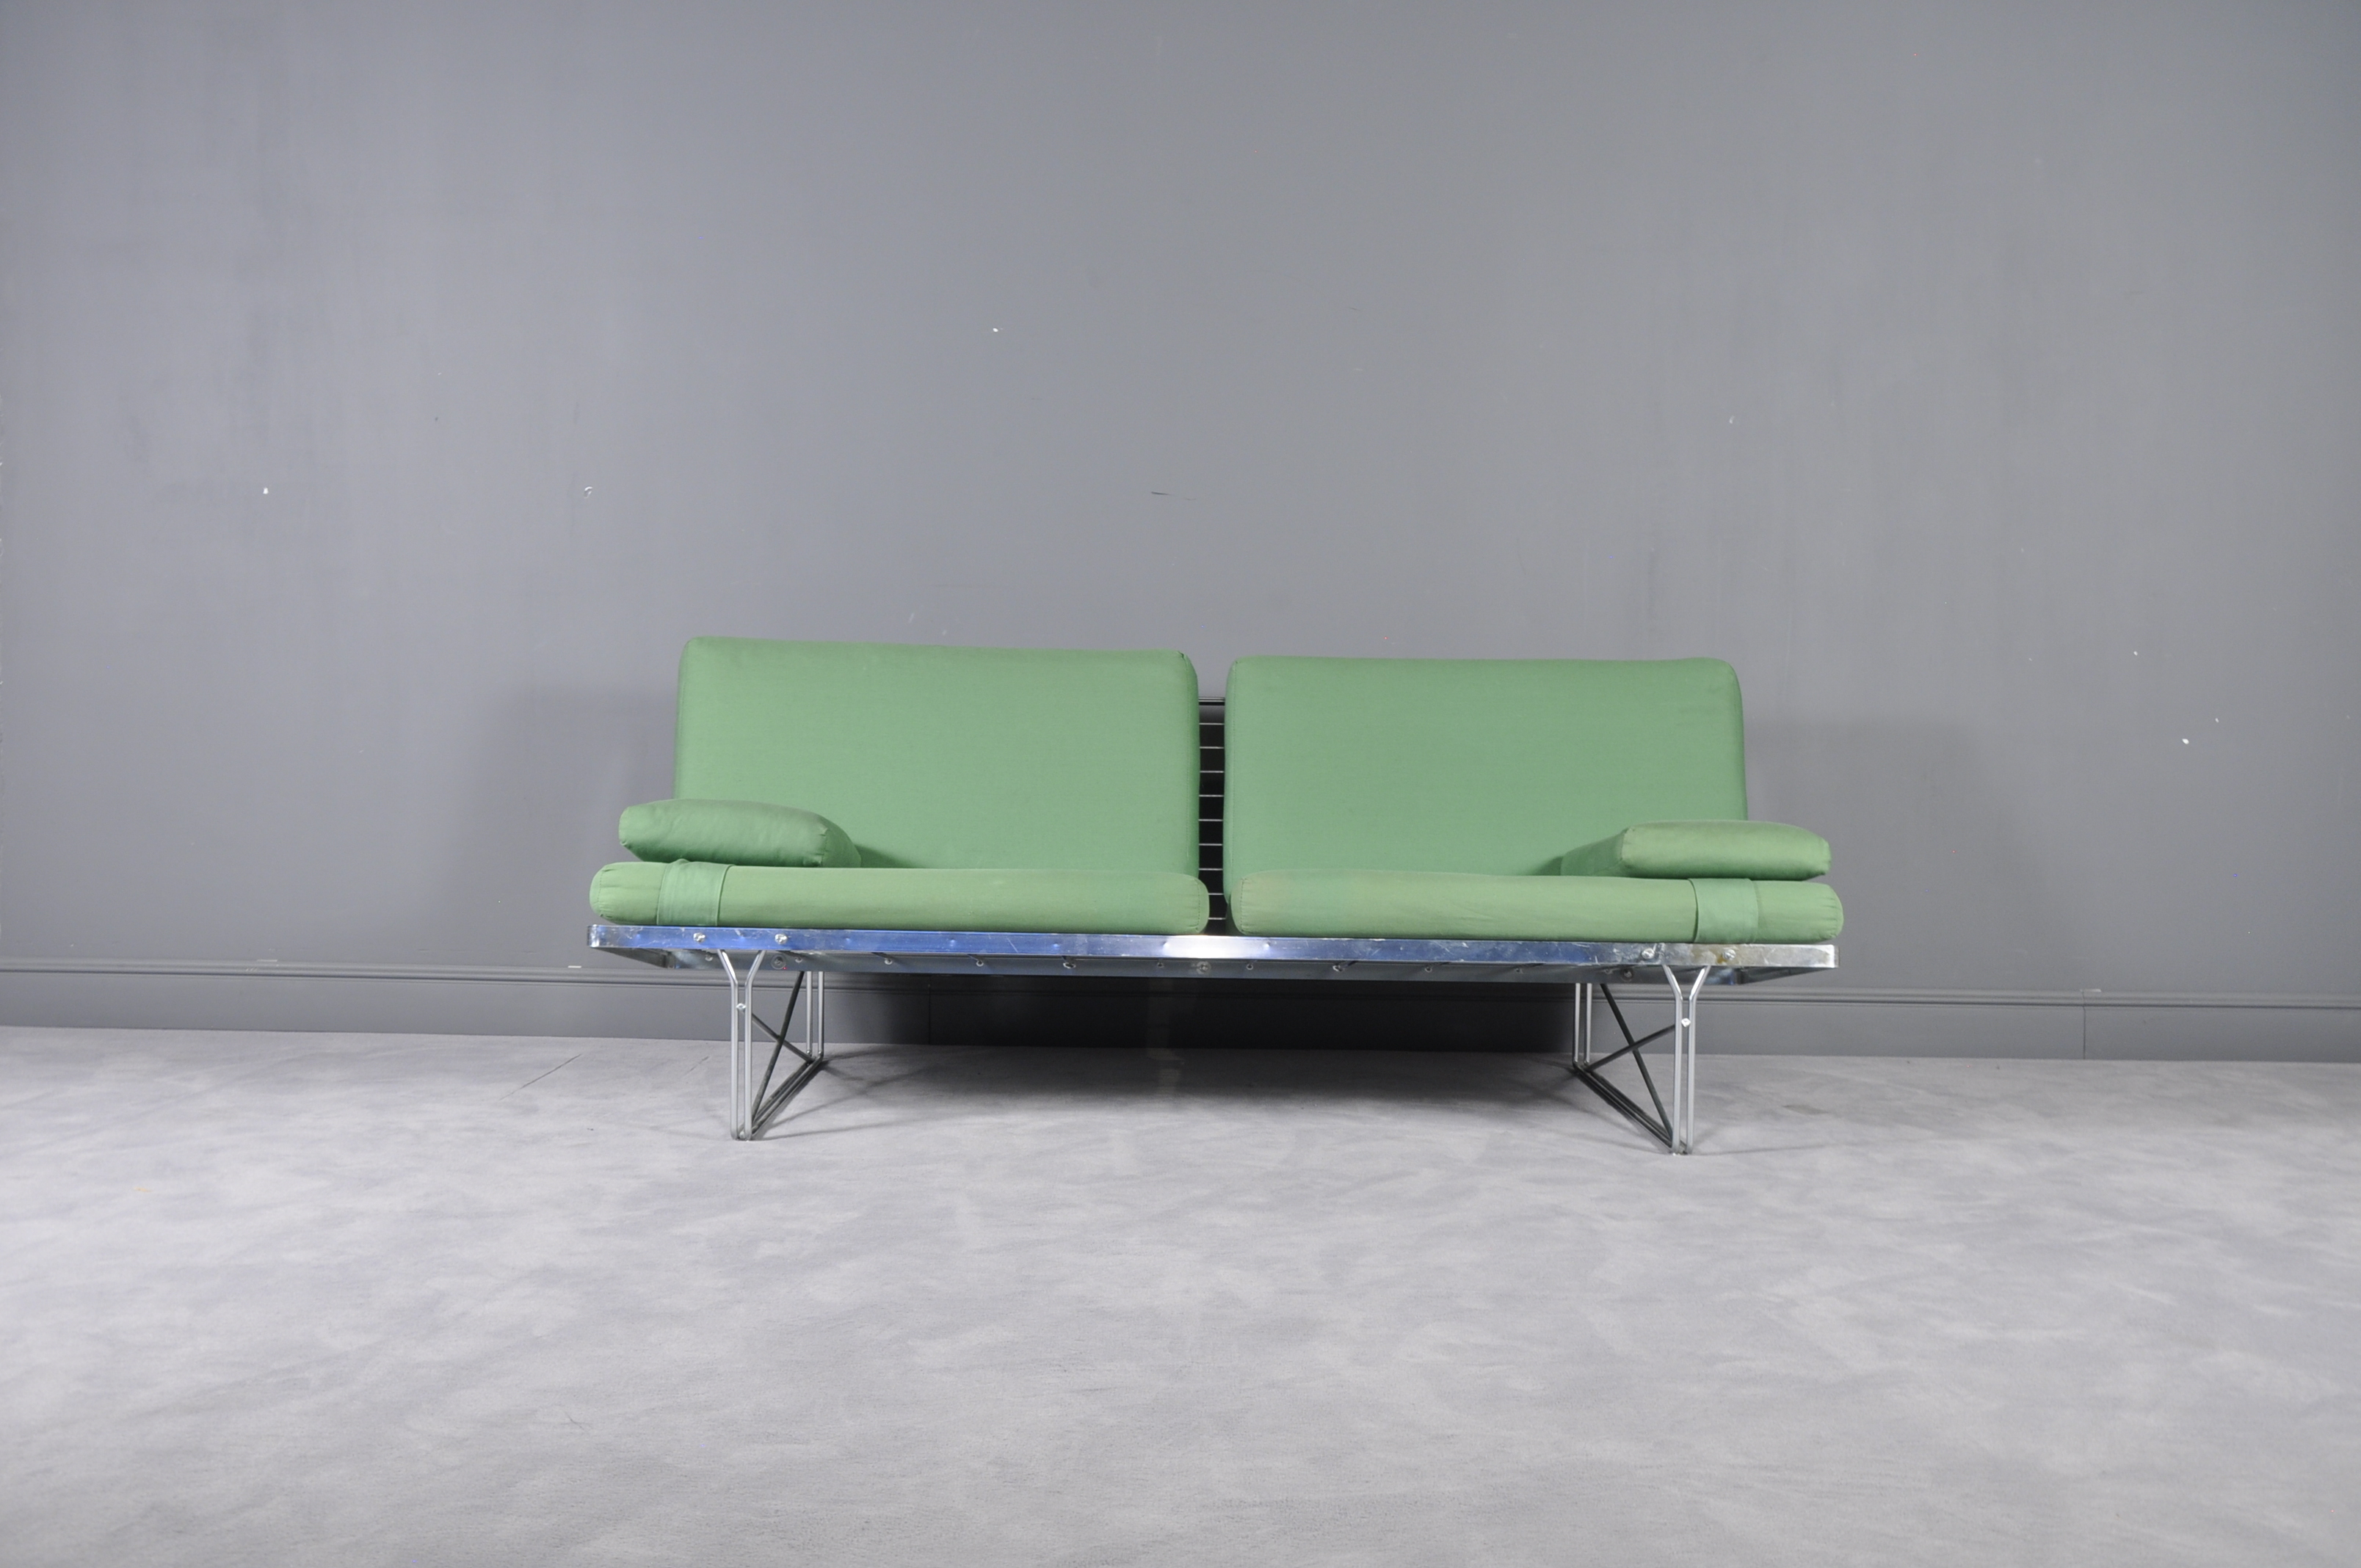 For Sofa Niels By Ikea1980s Moment Gammelgaard K1JFcl